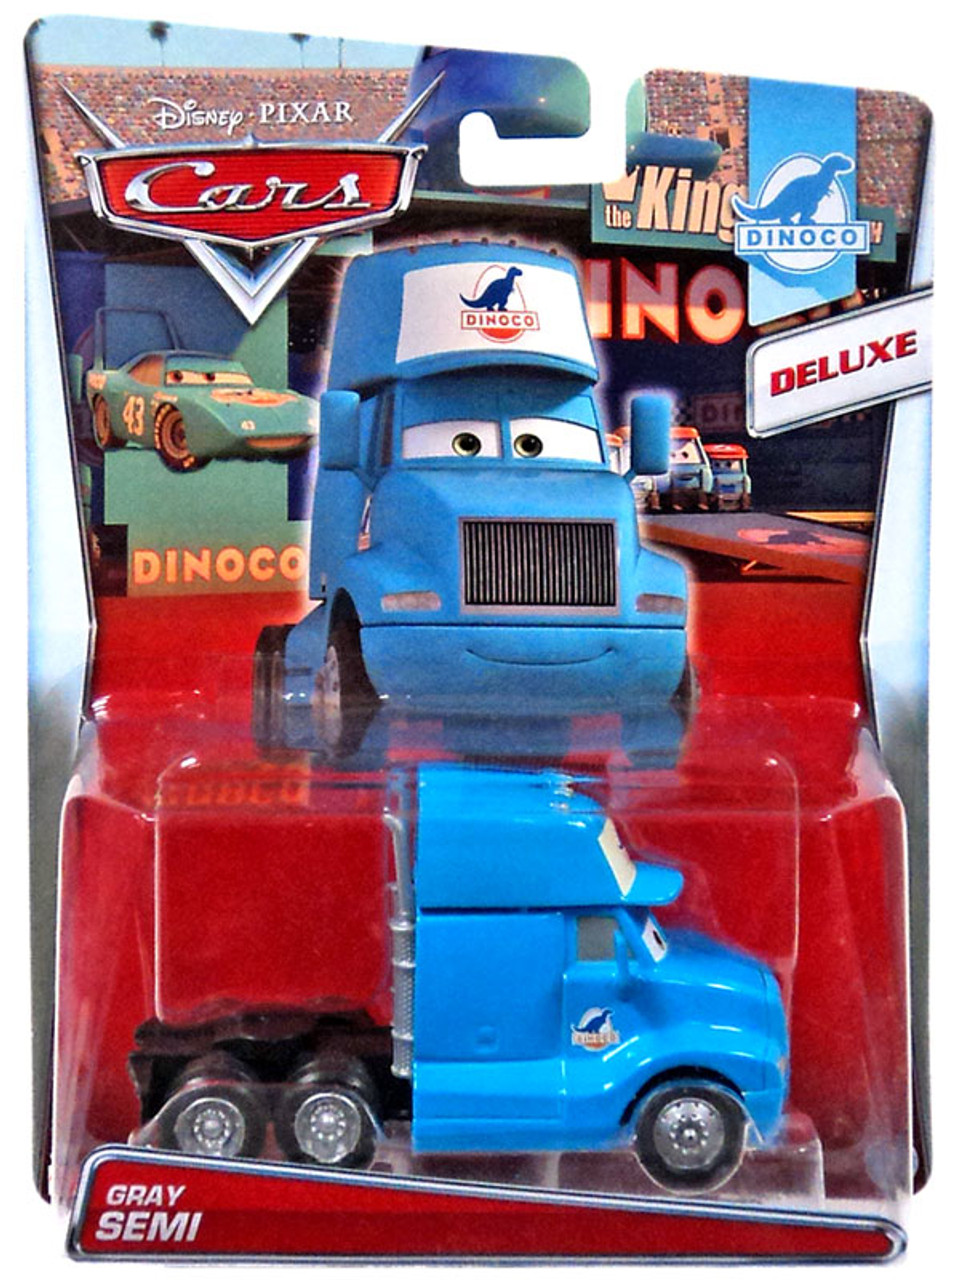 Disney / Pixar Cars Cars Deluxe Oversized Gray Semi Diecast Car #2/8  [Dinoco]